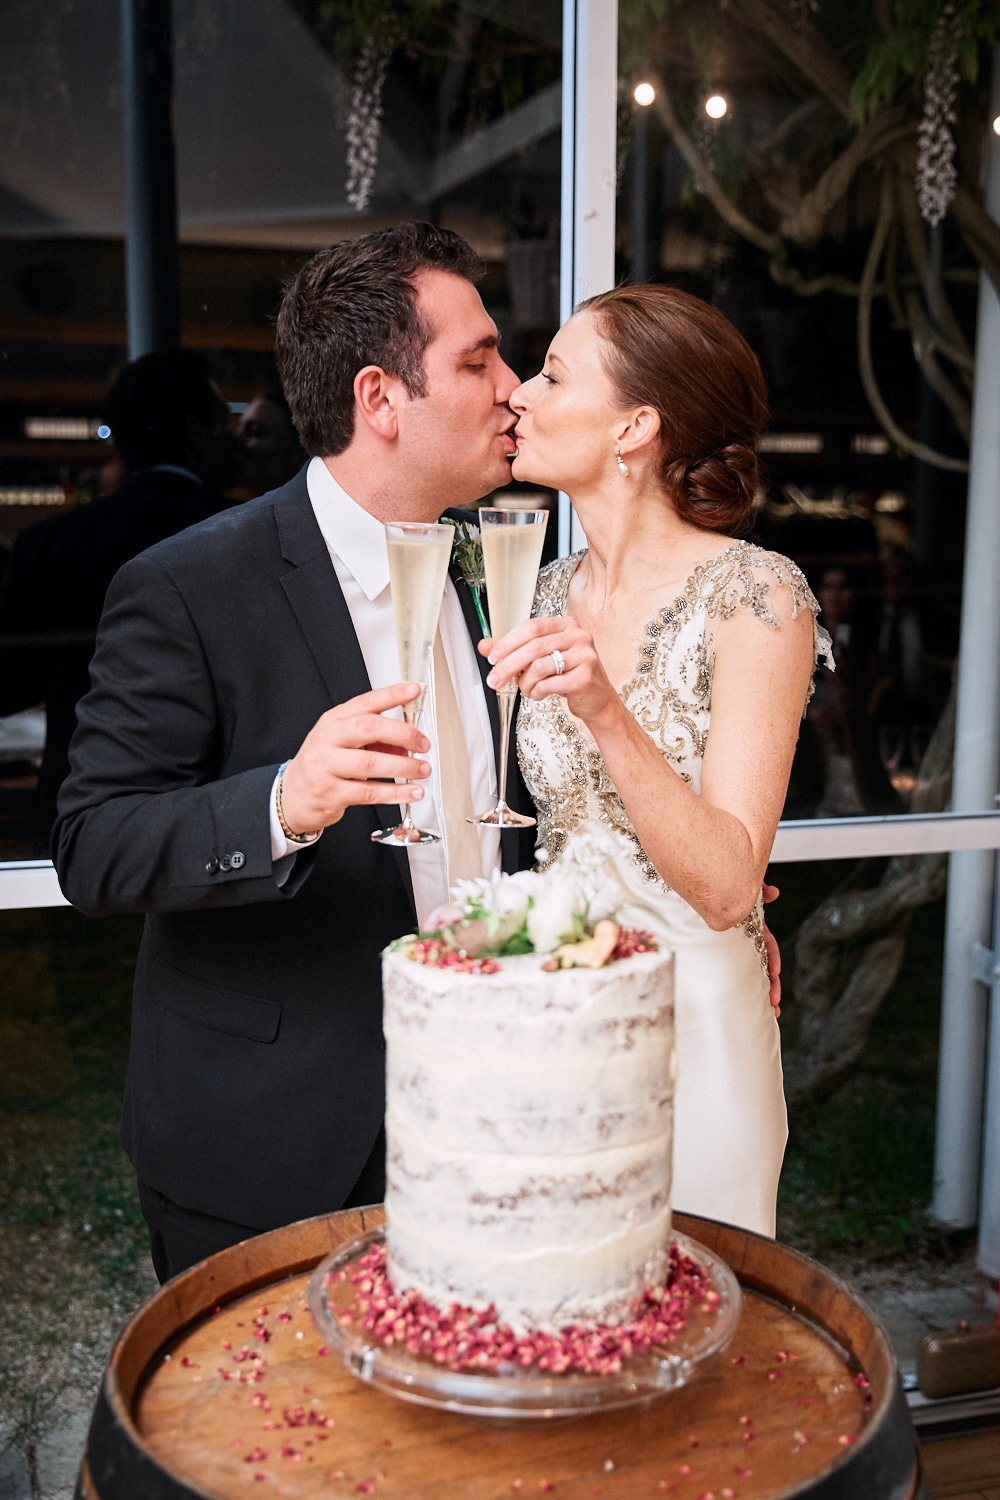 Newlyweds kissing while holding champagne flutes in front of wedding cake at Centennial Homestead wedding